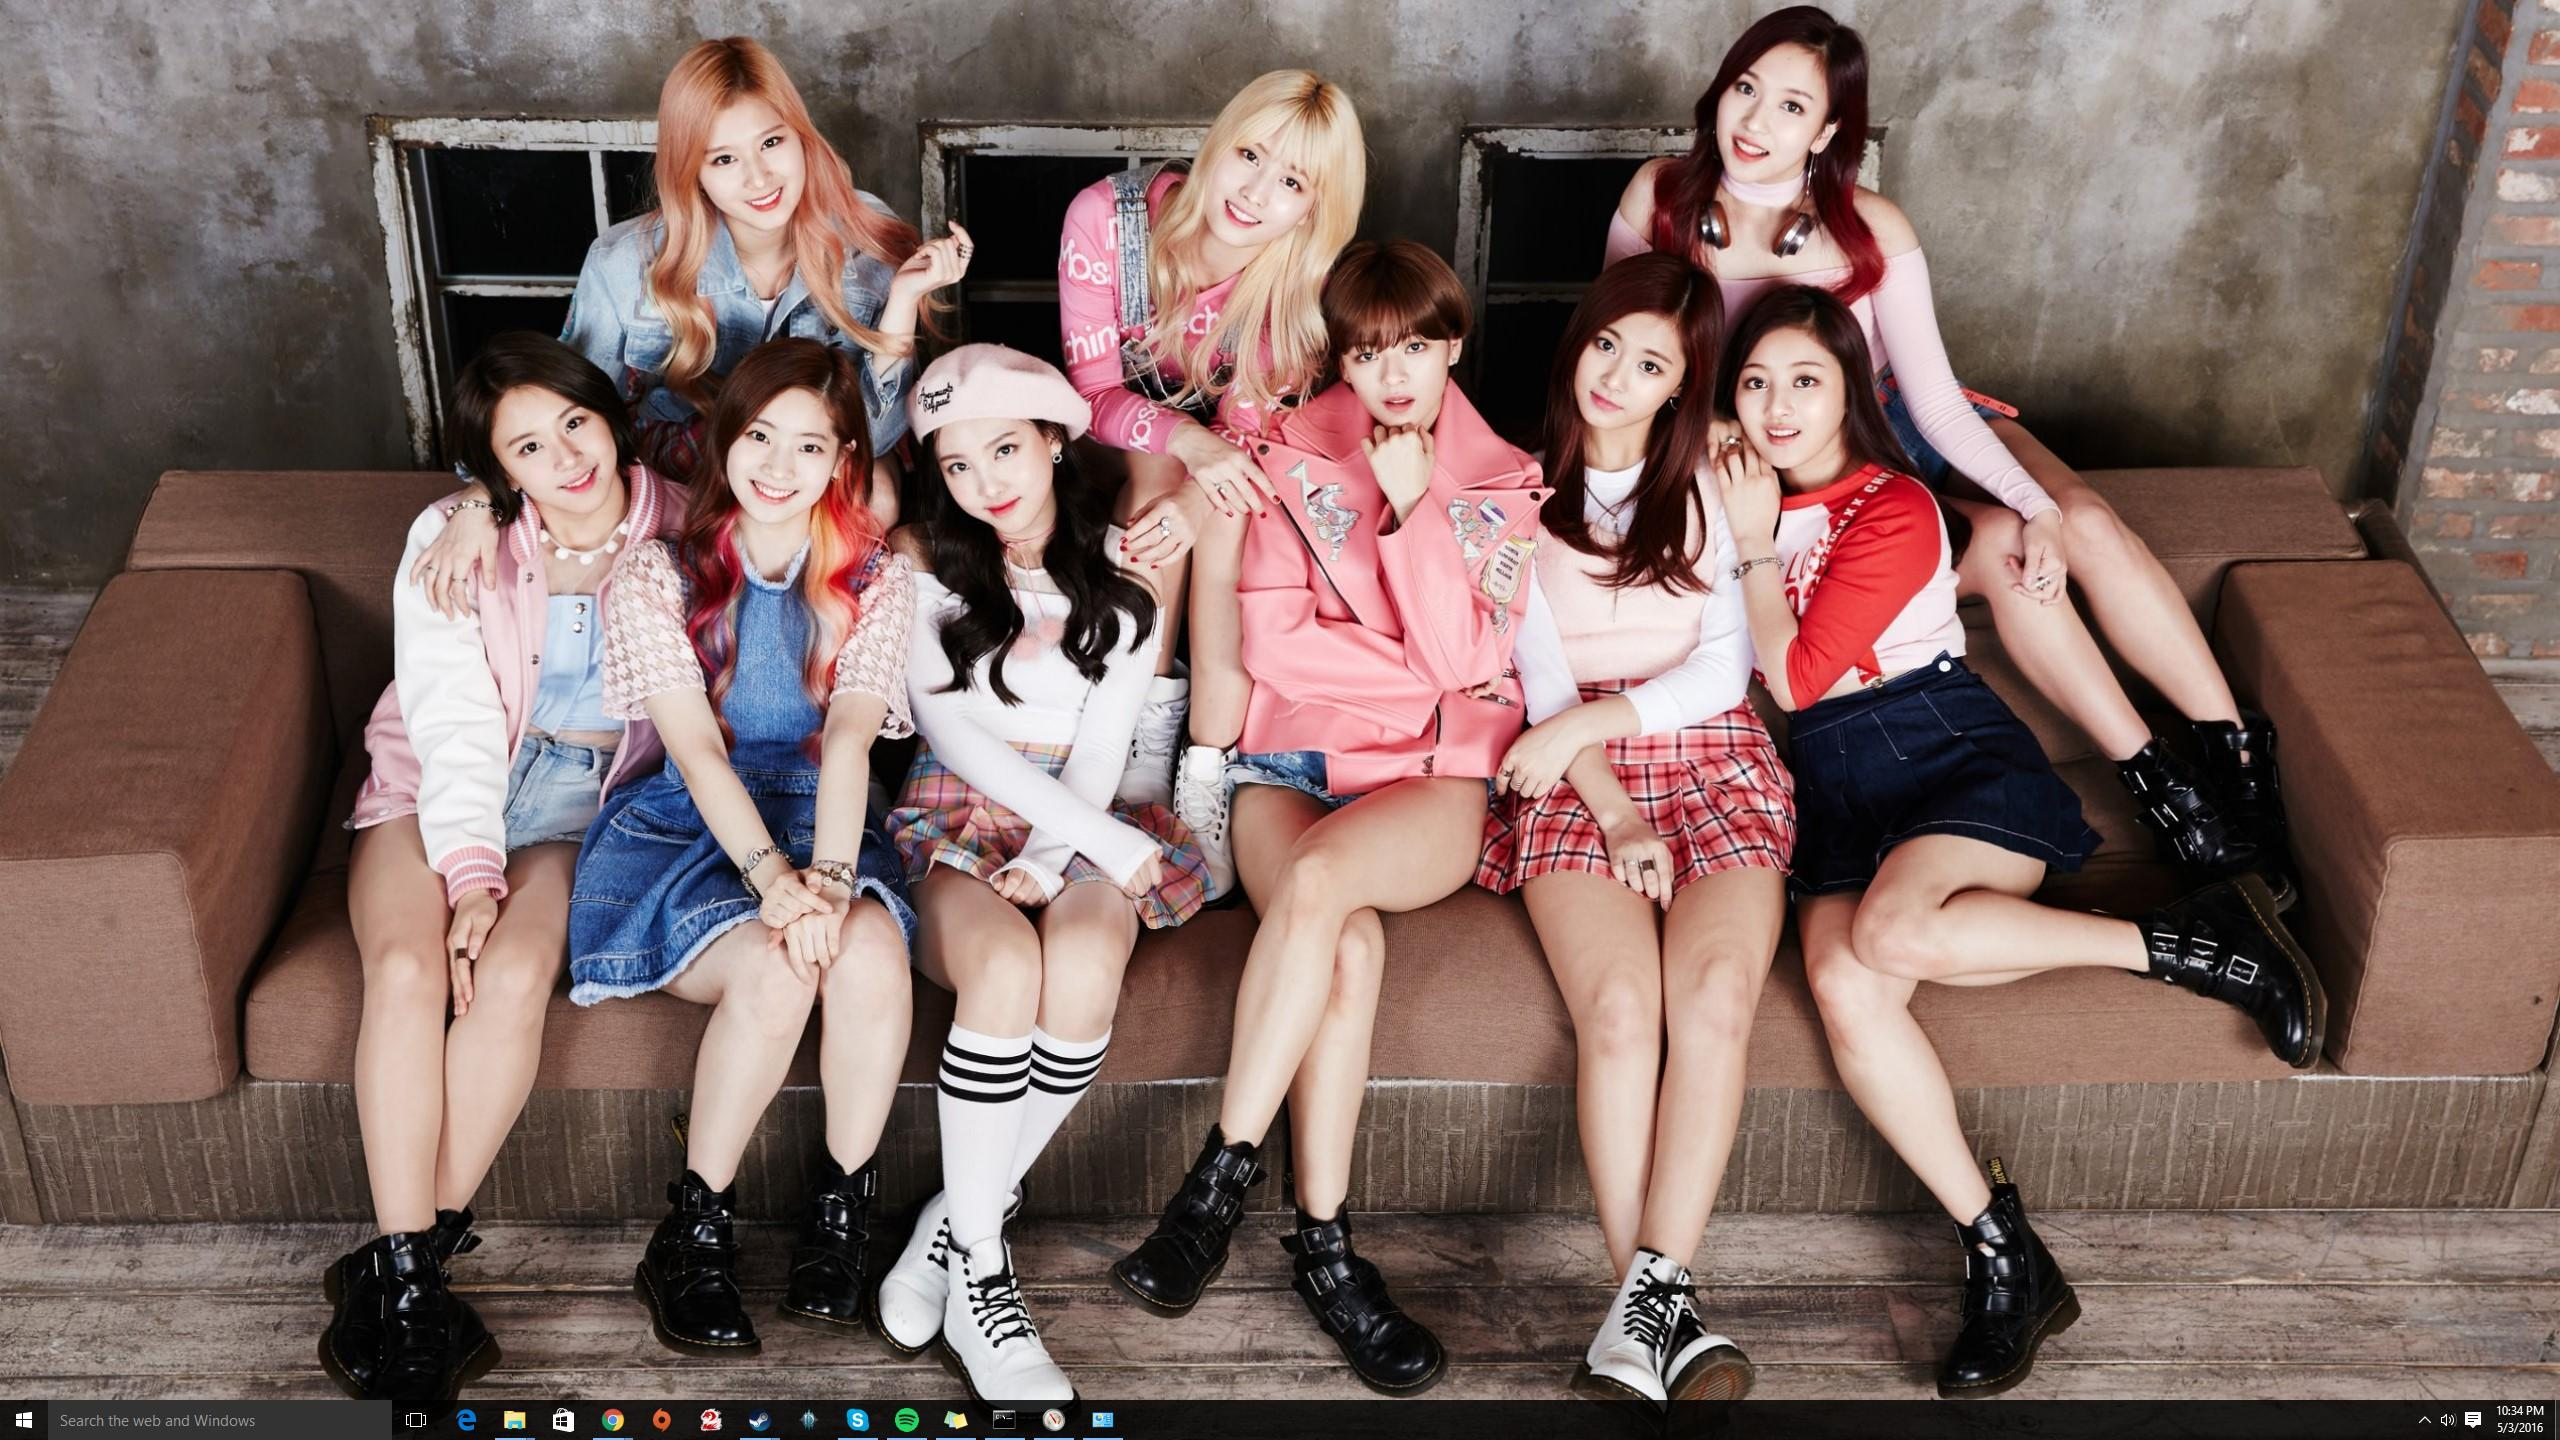 Post your twice wallpapers rn